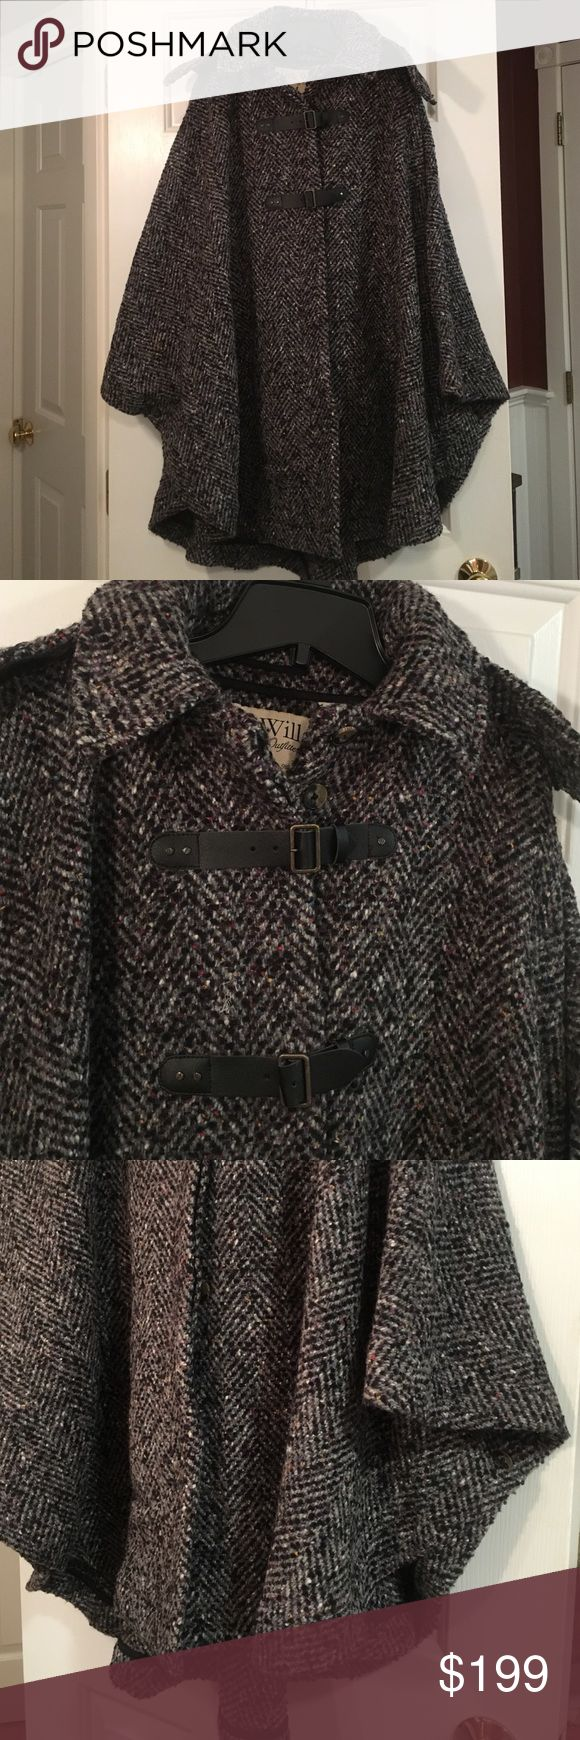 """New Jack Wills charcoal gray tweed cape New Jack Wills charcoal gray wool tweed cape size S/M. This is a gorgeous and substantial cape. It is unlined, has removable hood. Button side for creating arm hole and button front with leather fasteners as well. This was bought two years ago and is too big for me now. It has been stored and never worn except to try on twice. No tags. It is a heavy cape. I t seems to be best for a medium. May even fit a large well. I am 5'2"""" and slight build. Charcoal…"""